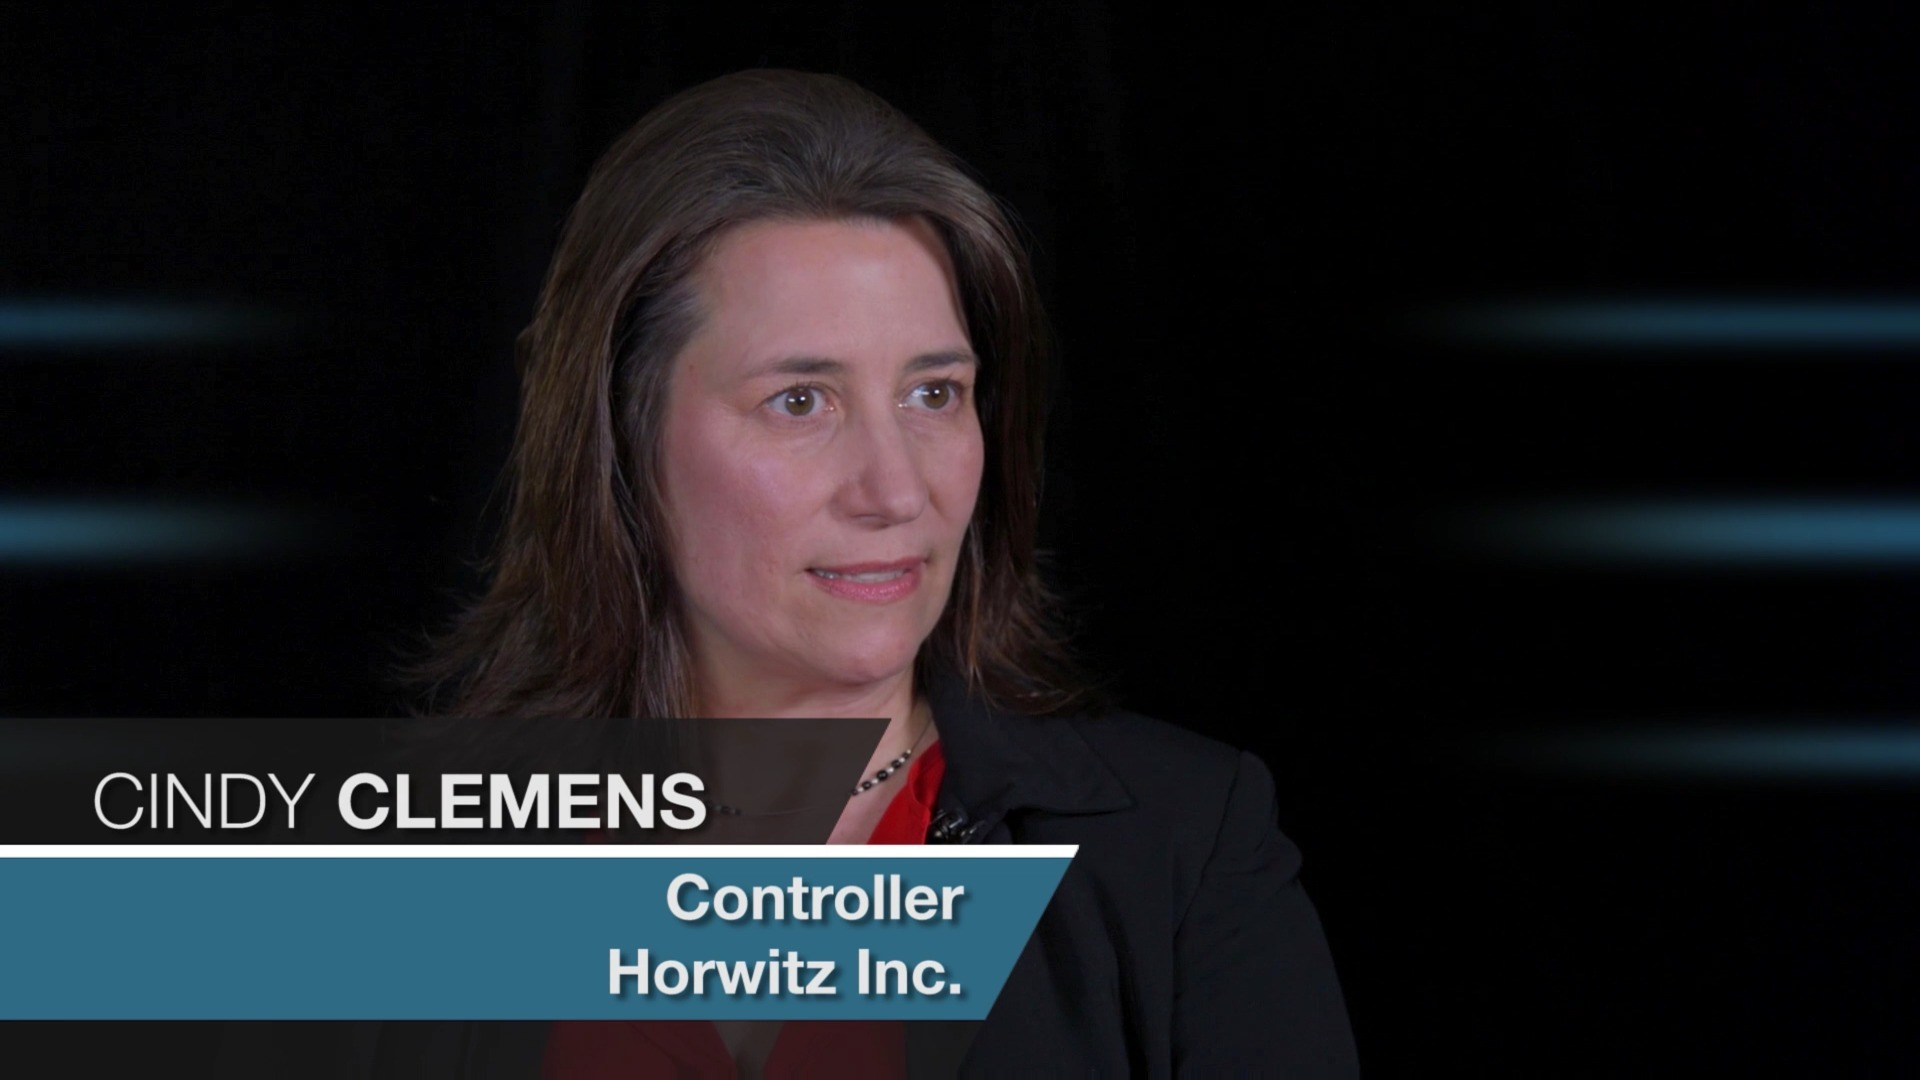 Cindy Clemens - Horwitz Inc.